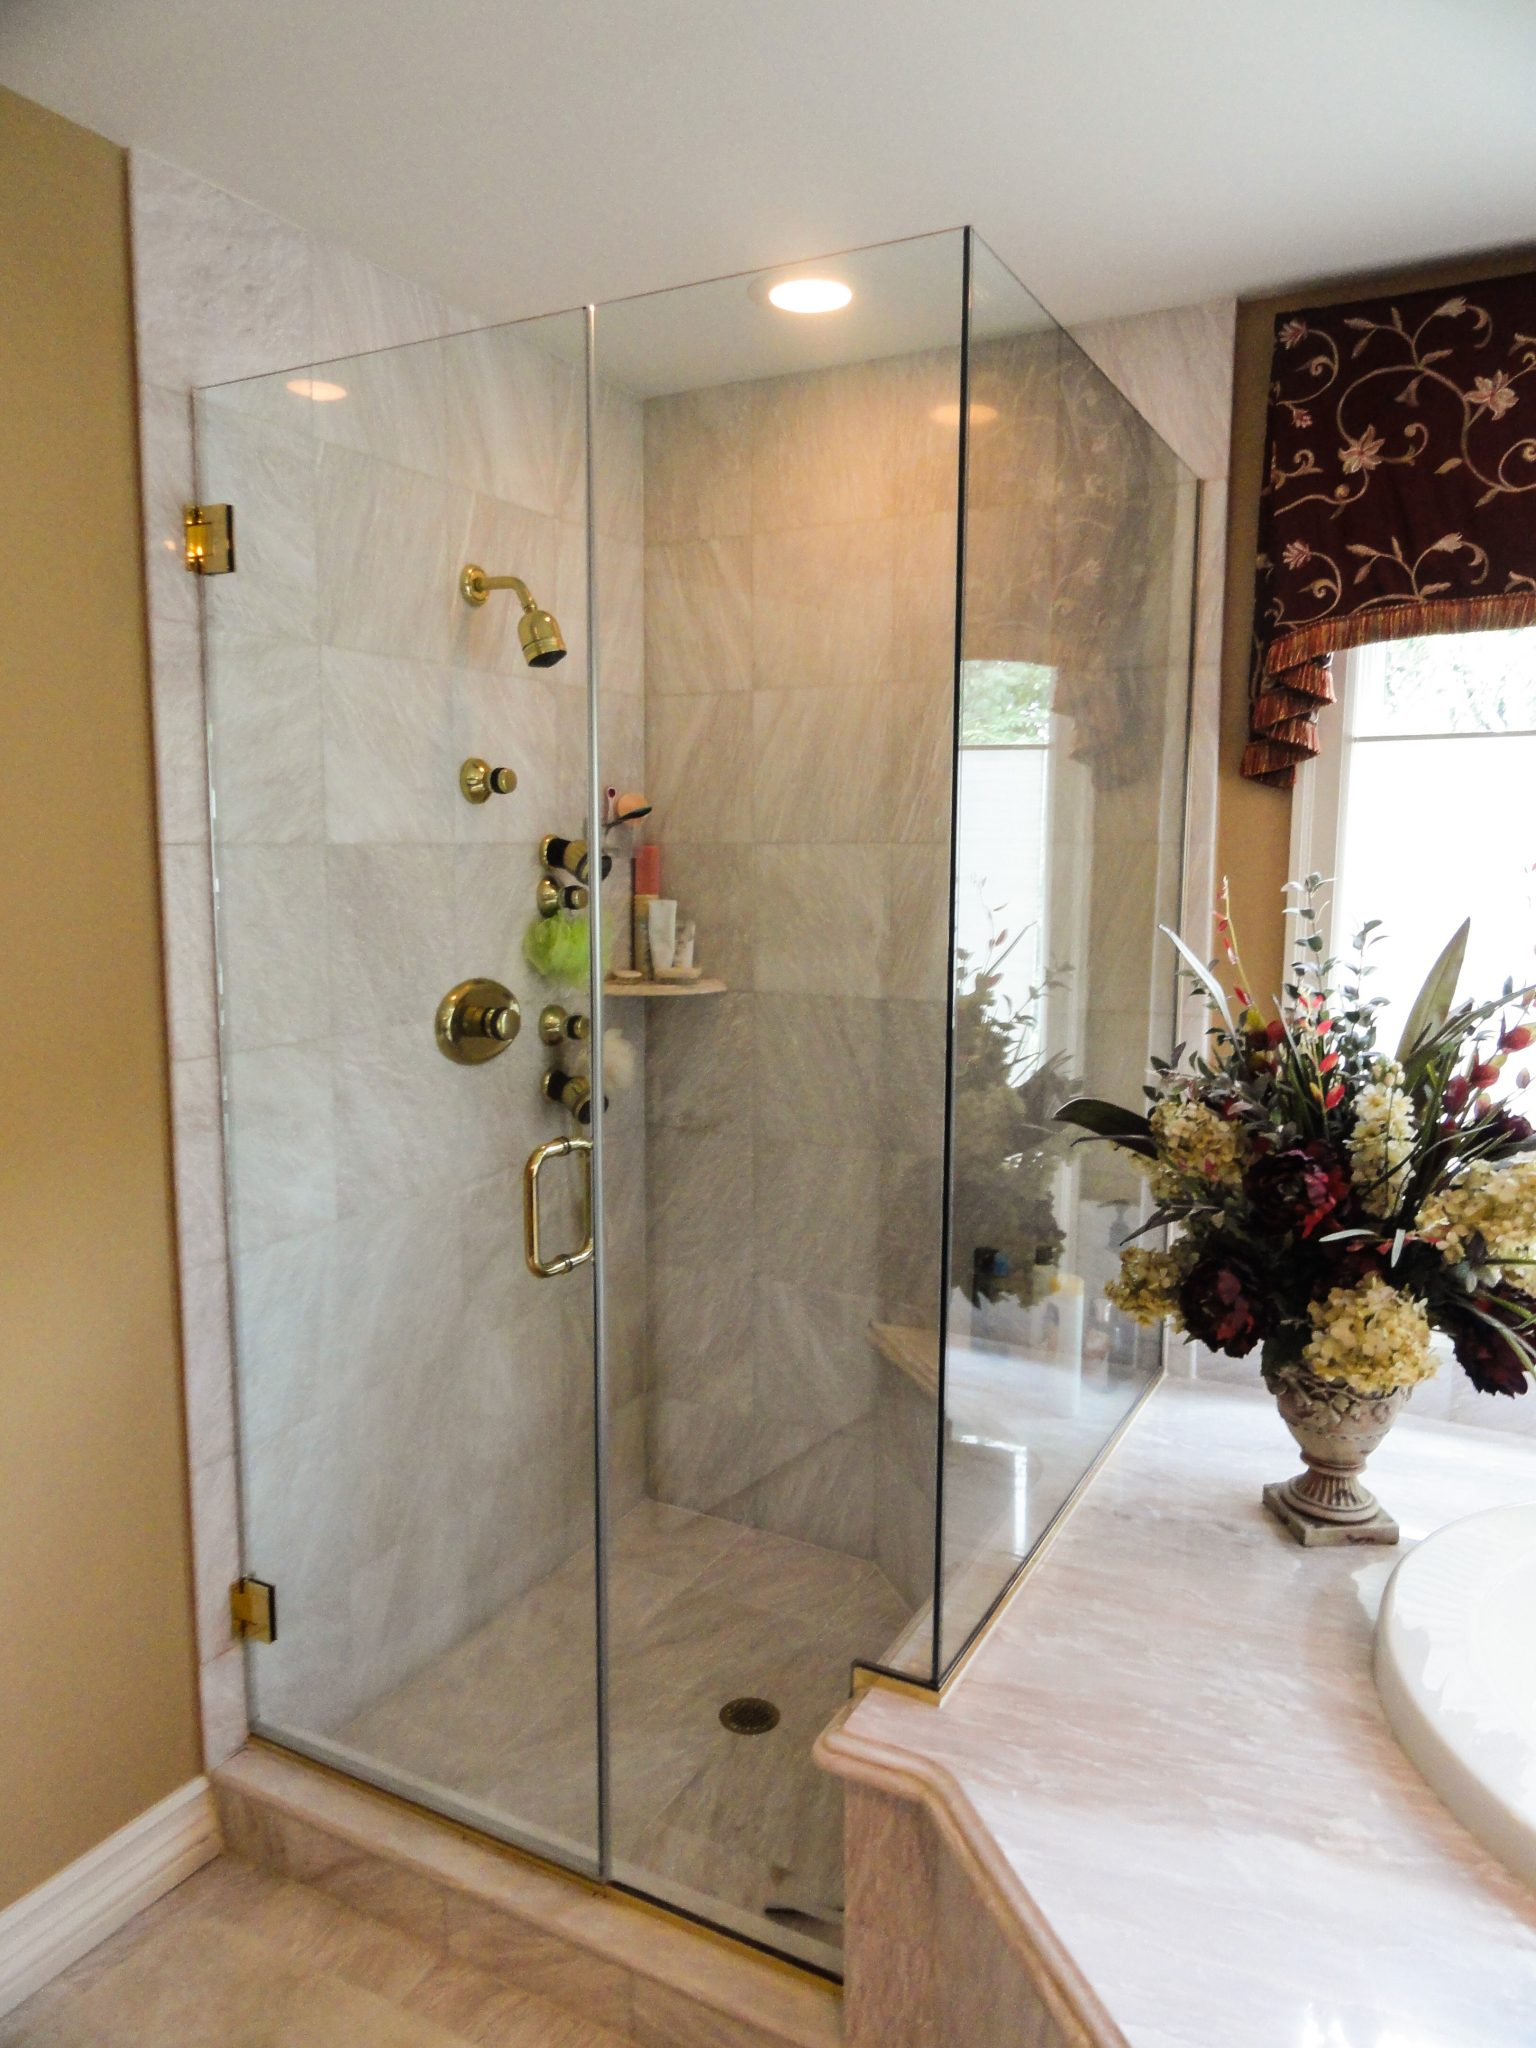 90 Degree Shower Using Clips Edited New Jersey Allied Glass